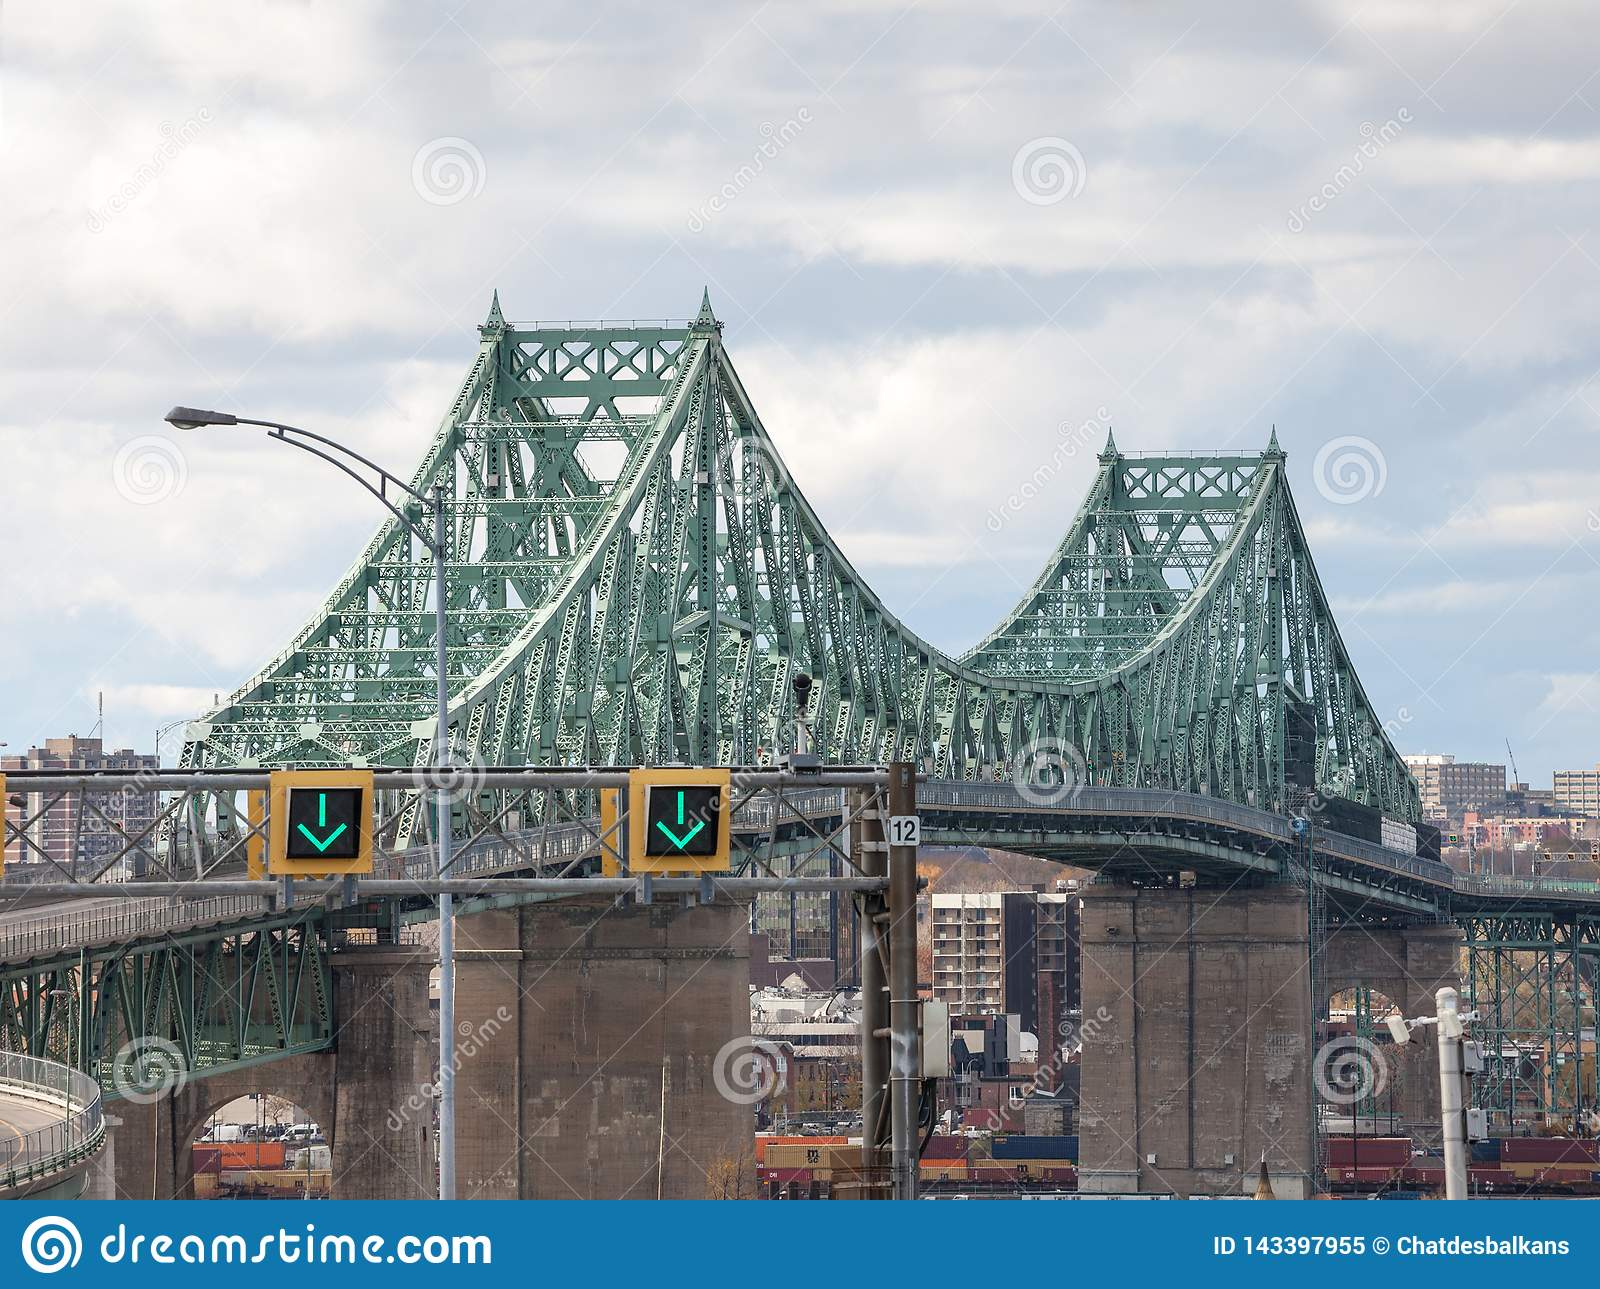 Pont Jacques Cartier bridge taken in the direction of Montreal, in Quebec, Canada on the Saint Lawrence river,